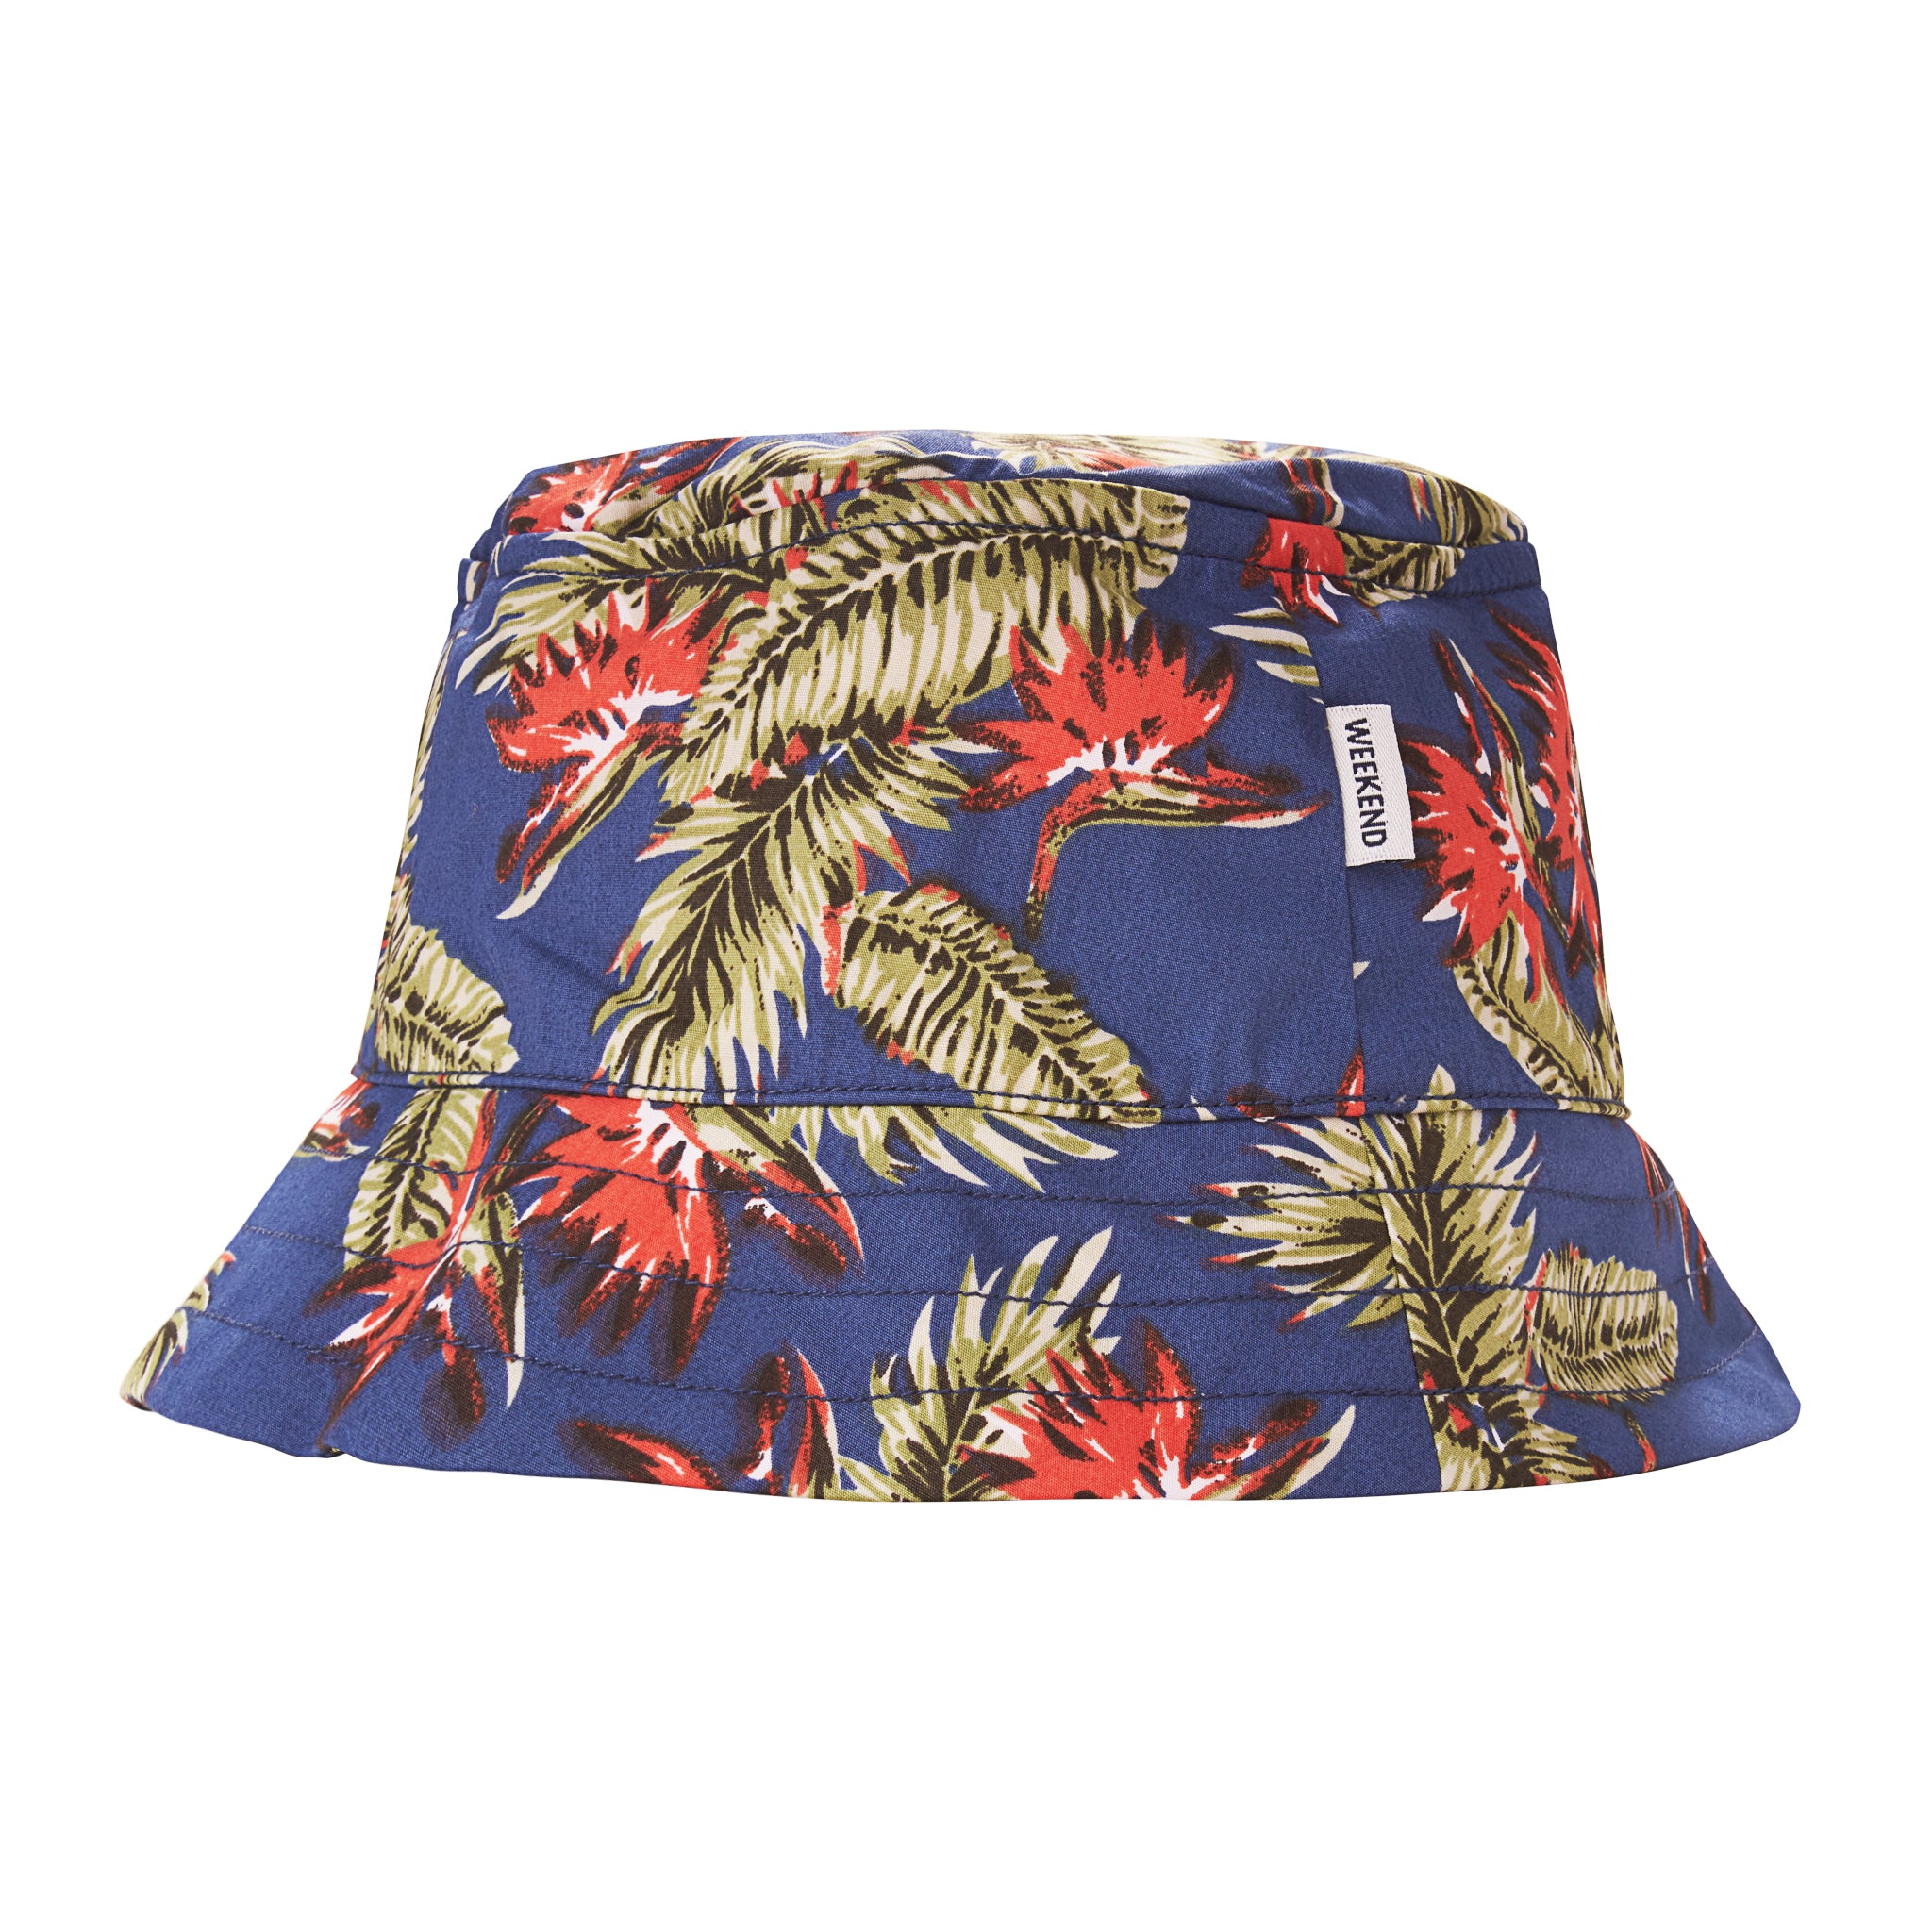 Sarasota Bucket Hat Navy/Tropical